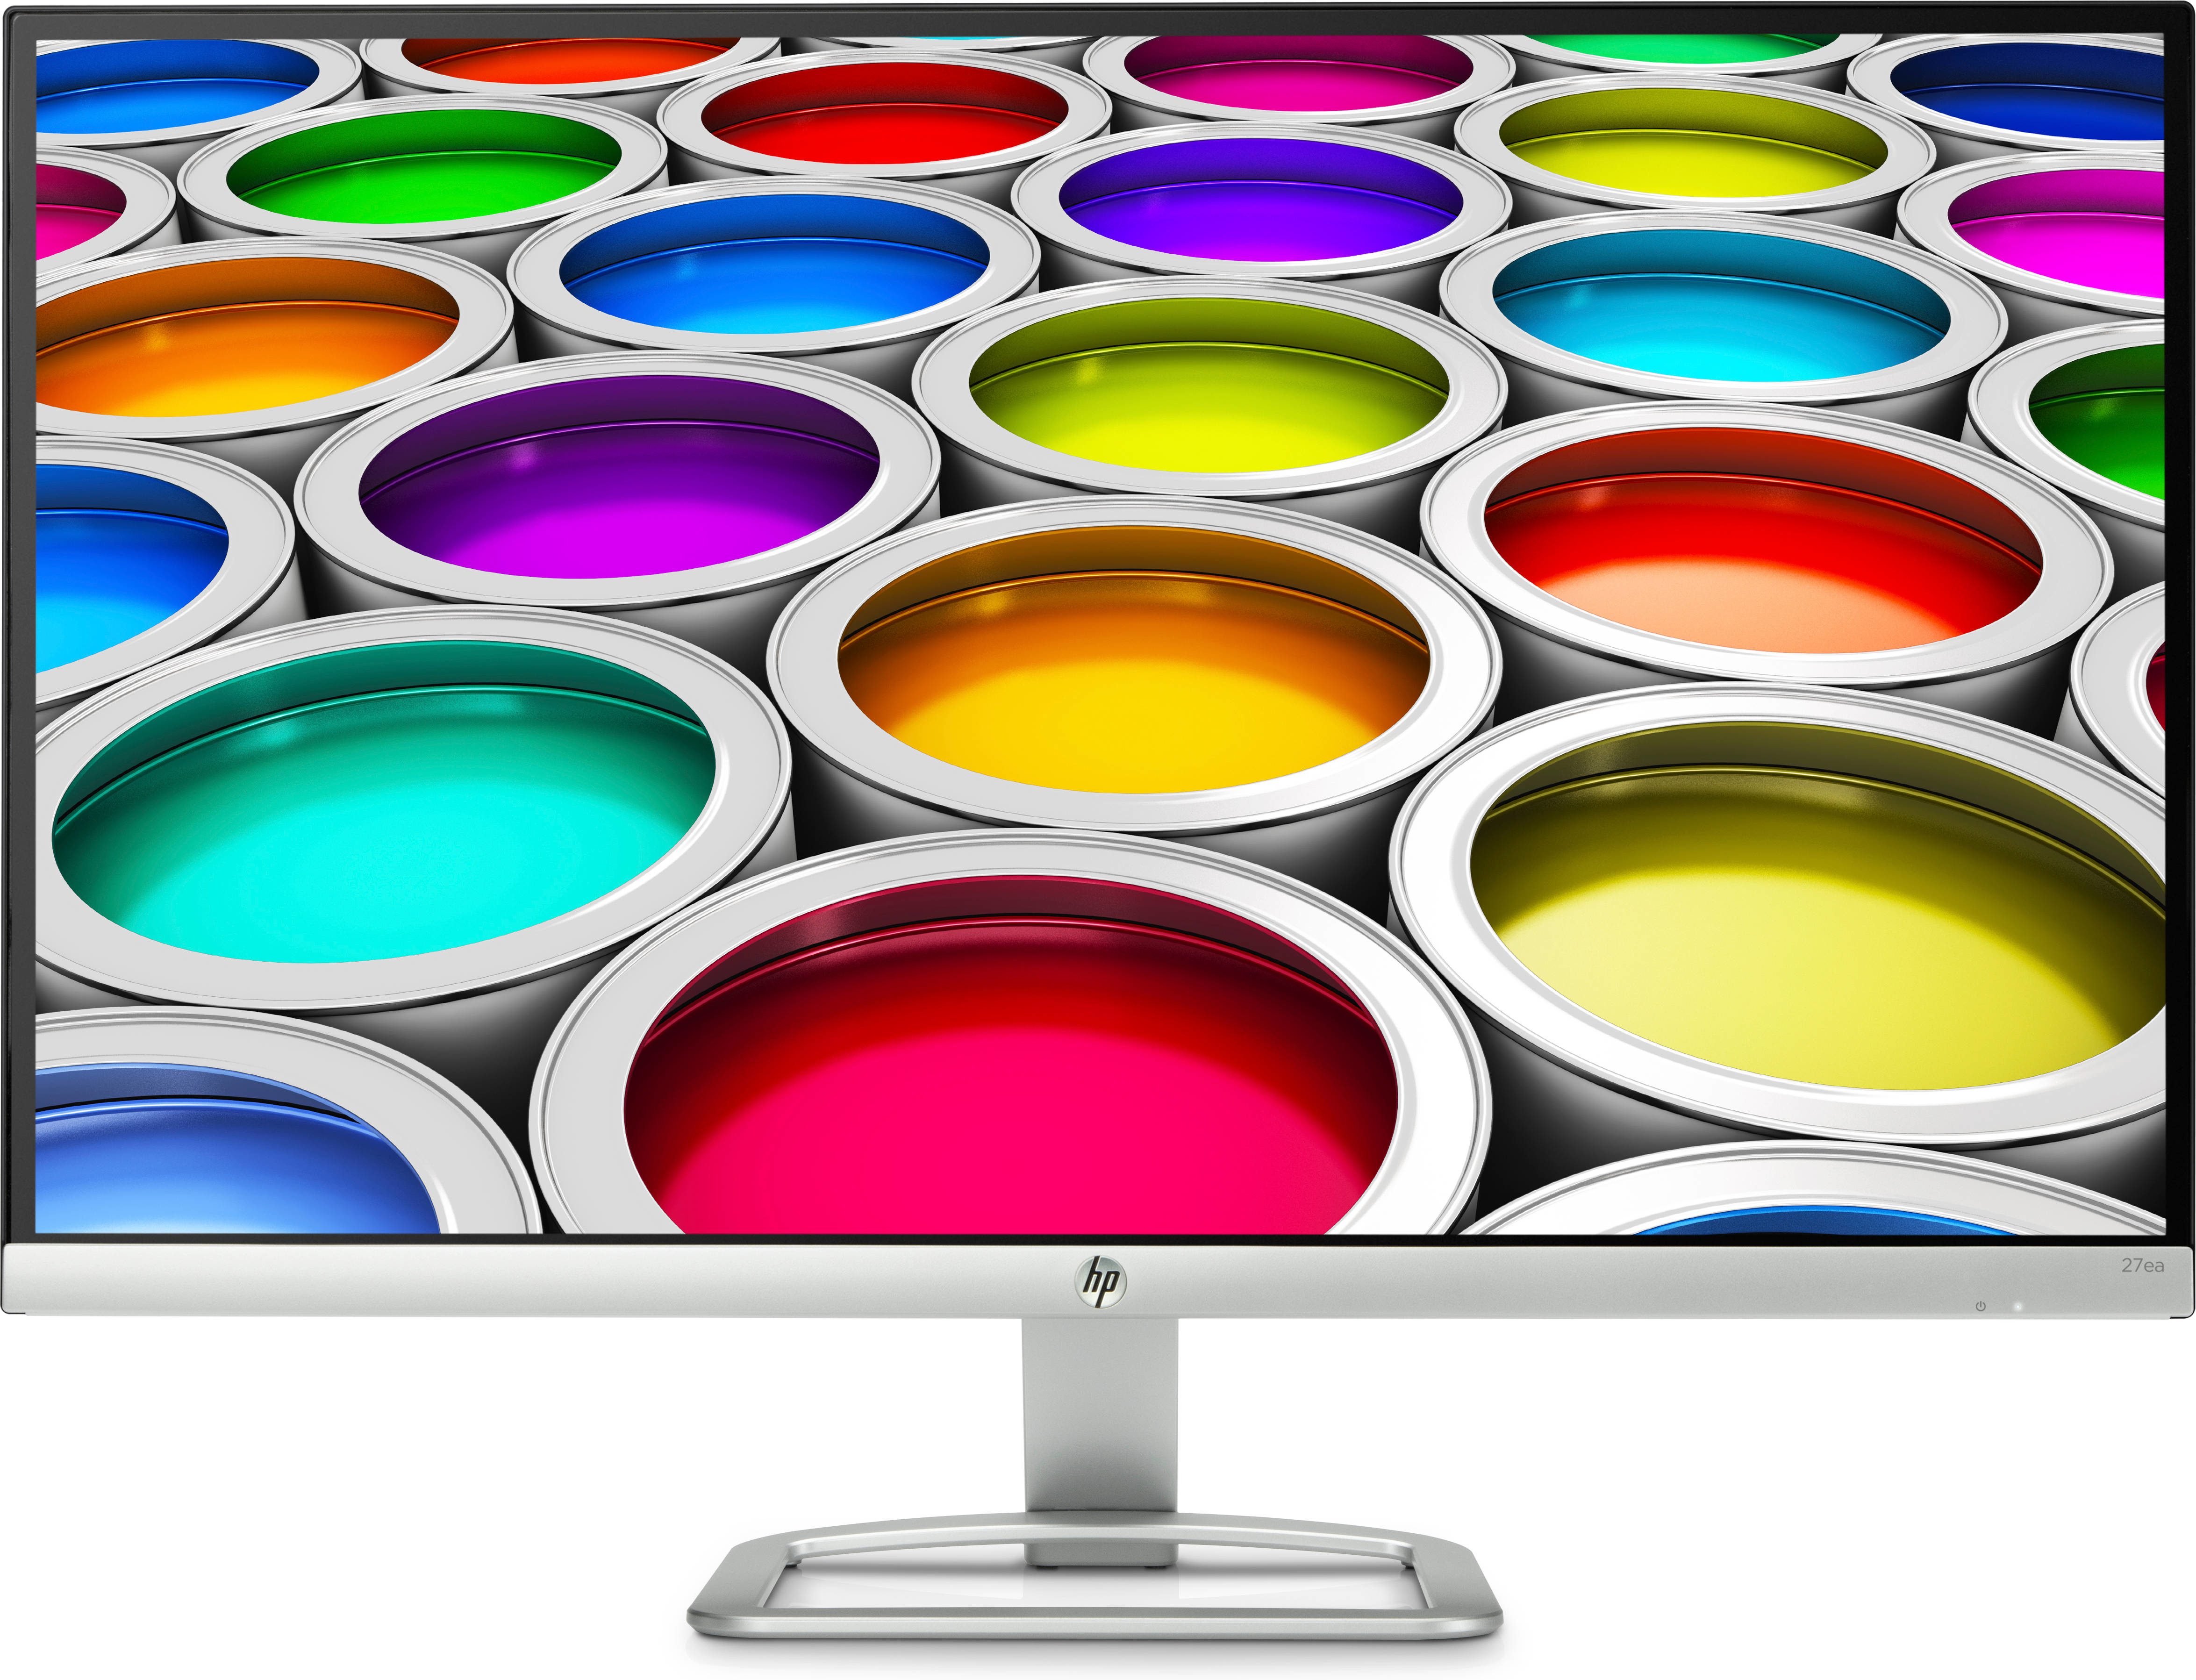 EXCESS 27 FHD IPS DISPLAY